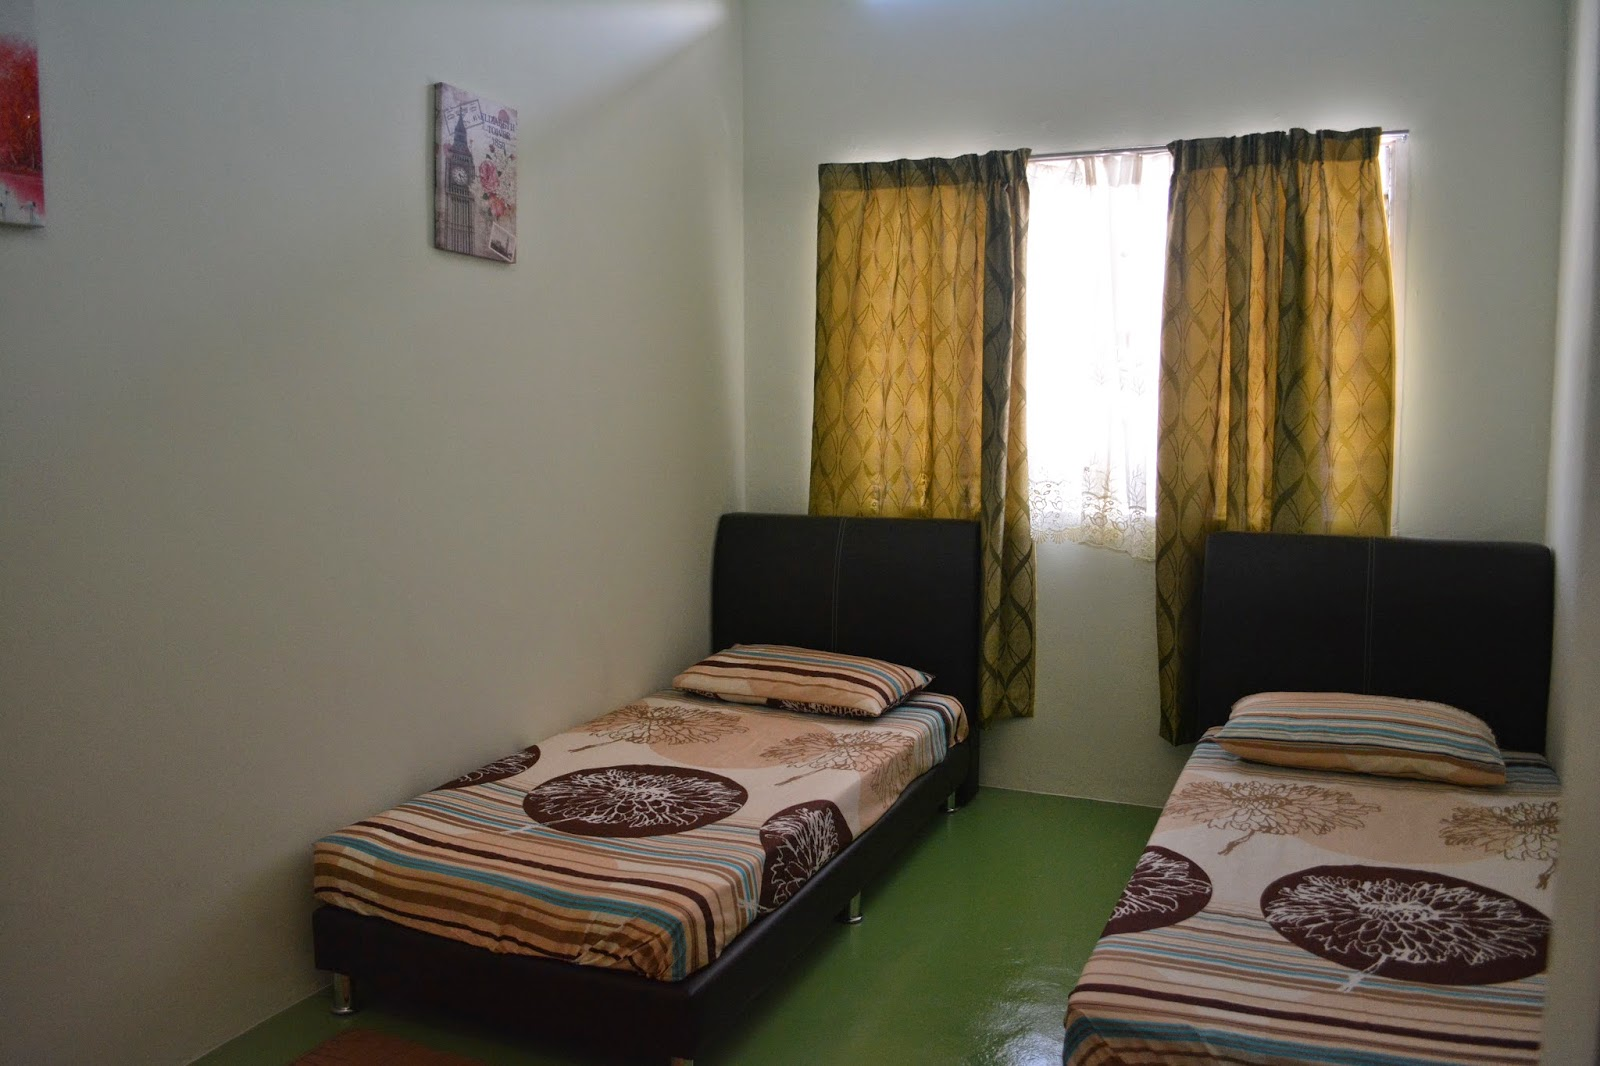 ipoh single men Book cheap penang hostels with hostelscom choose from 41 hostels with prices from us$067 search by map, read penang hostel reviews & pay no booking fees.